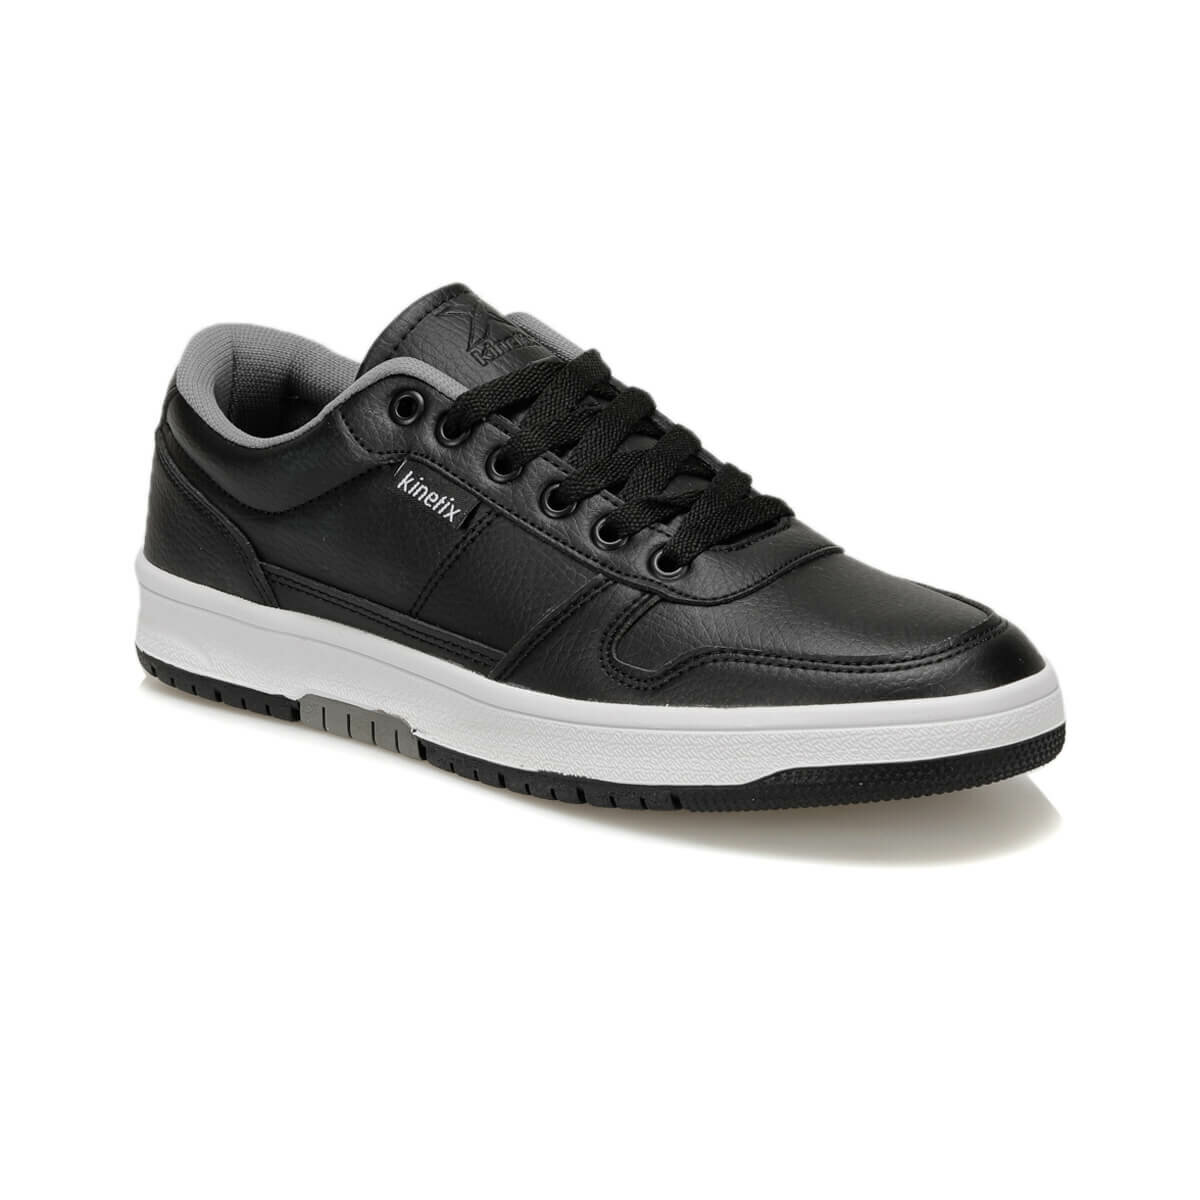 FLO BERGER M Black Men 'S Sneaker Shoes KINETIX